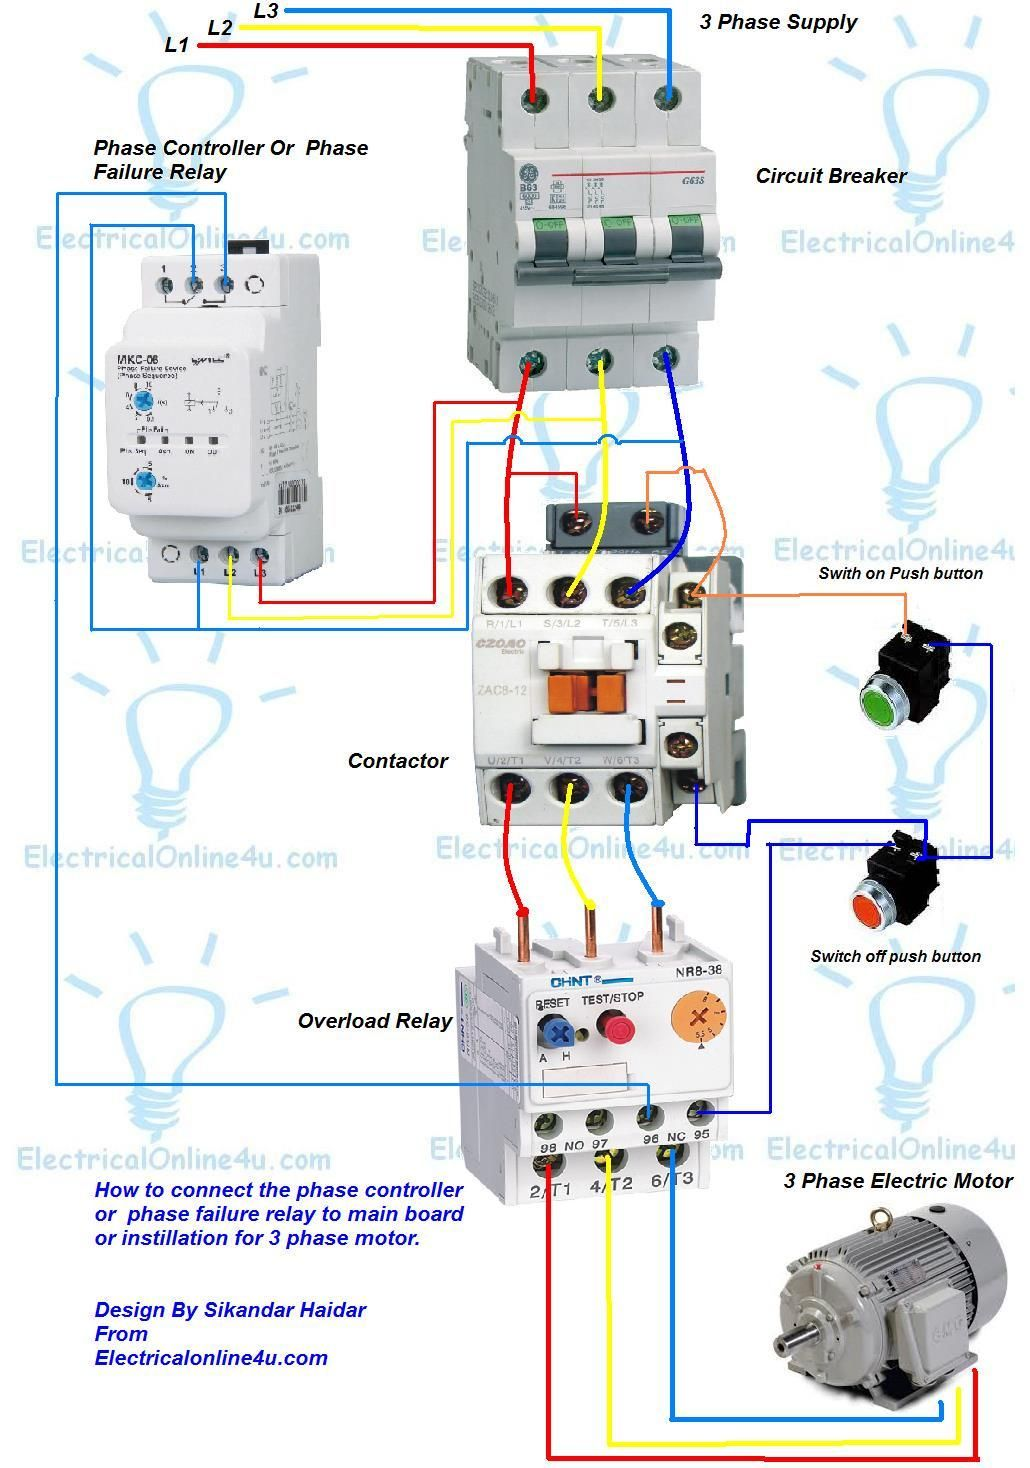 phase controller wiring phase failure relay diagram di on linephase controller wiring phase failure relay diagram